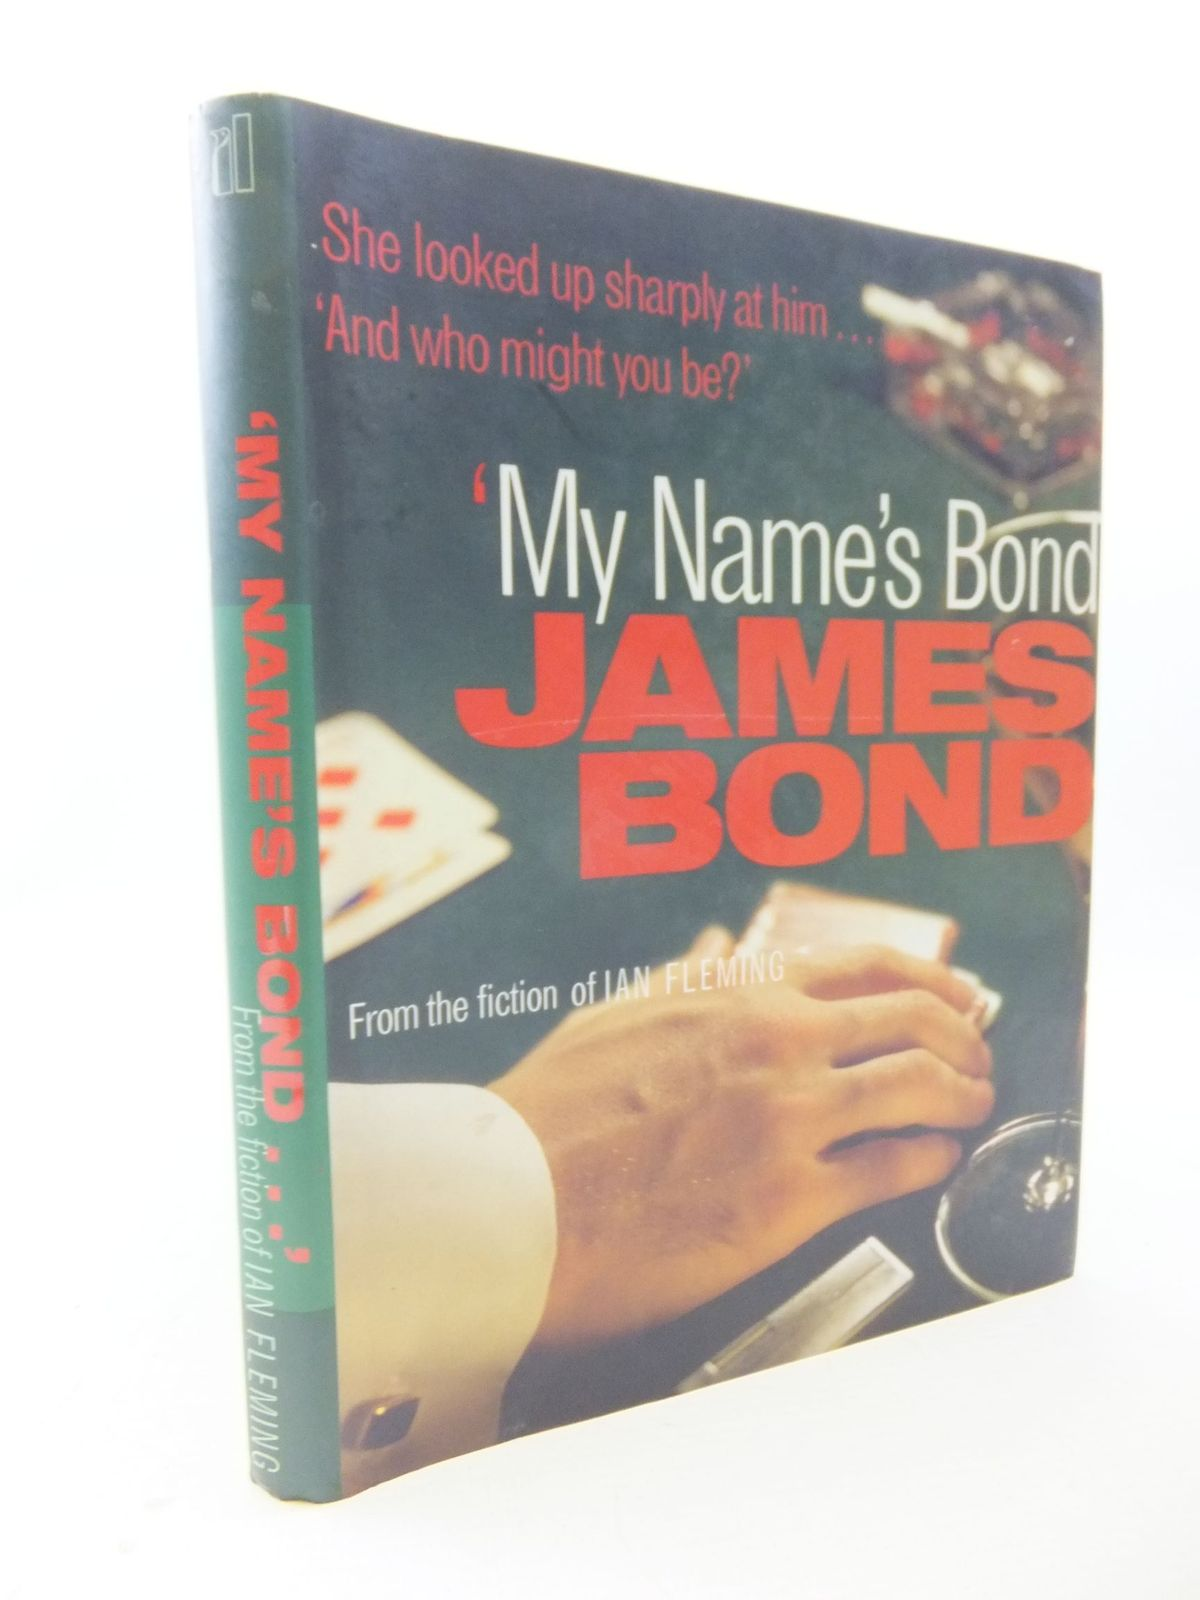 Photo of 'MY NAME'S BOND...' AN ANTHOLOGY FROM THE FICTION OF IAN FLEMING written by Winder, Simon<br />Fleming, Ian published by Allen Lane, Penguin Press (STOCK CODE: 1710773)  for sale by Stella & Rose's Books